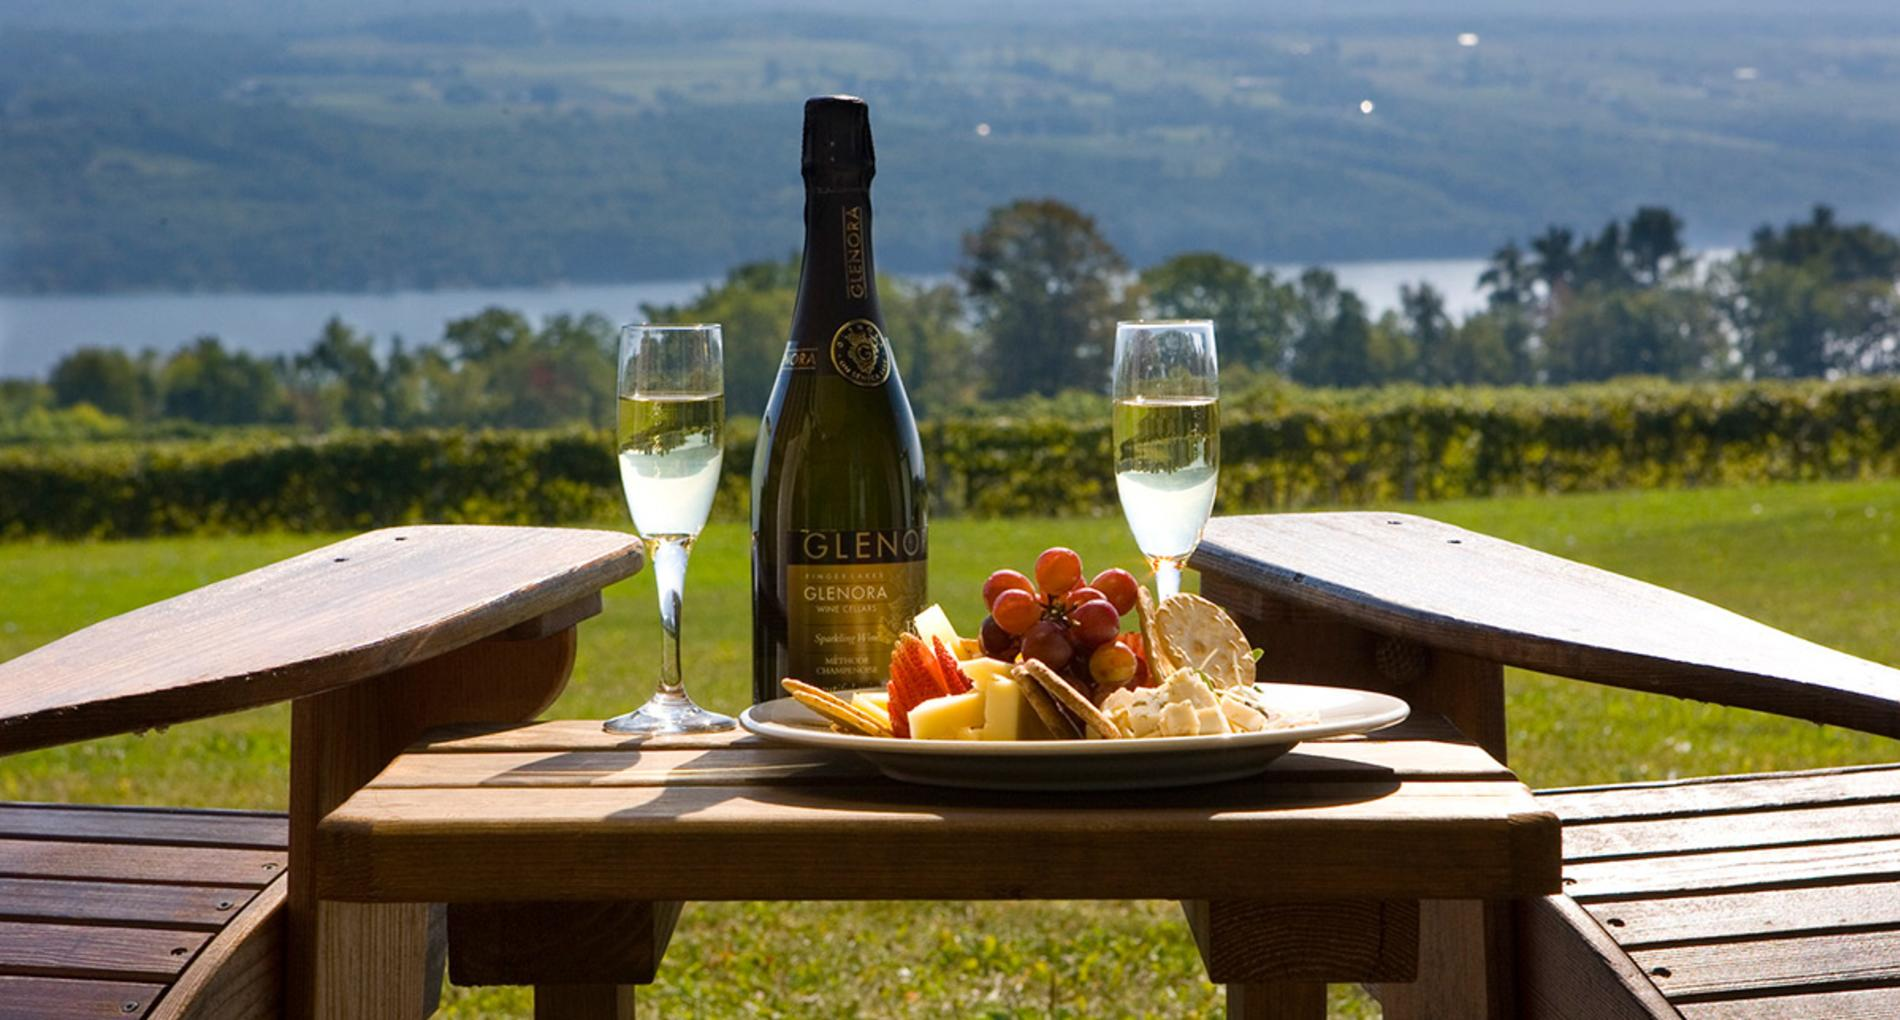 Finger Lakes Region in the running for 'Best Wine Region', 'Best Wine Festival' designations